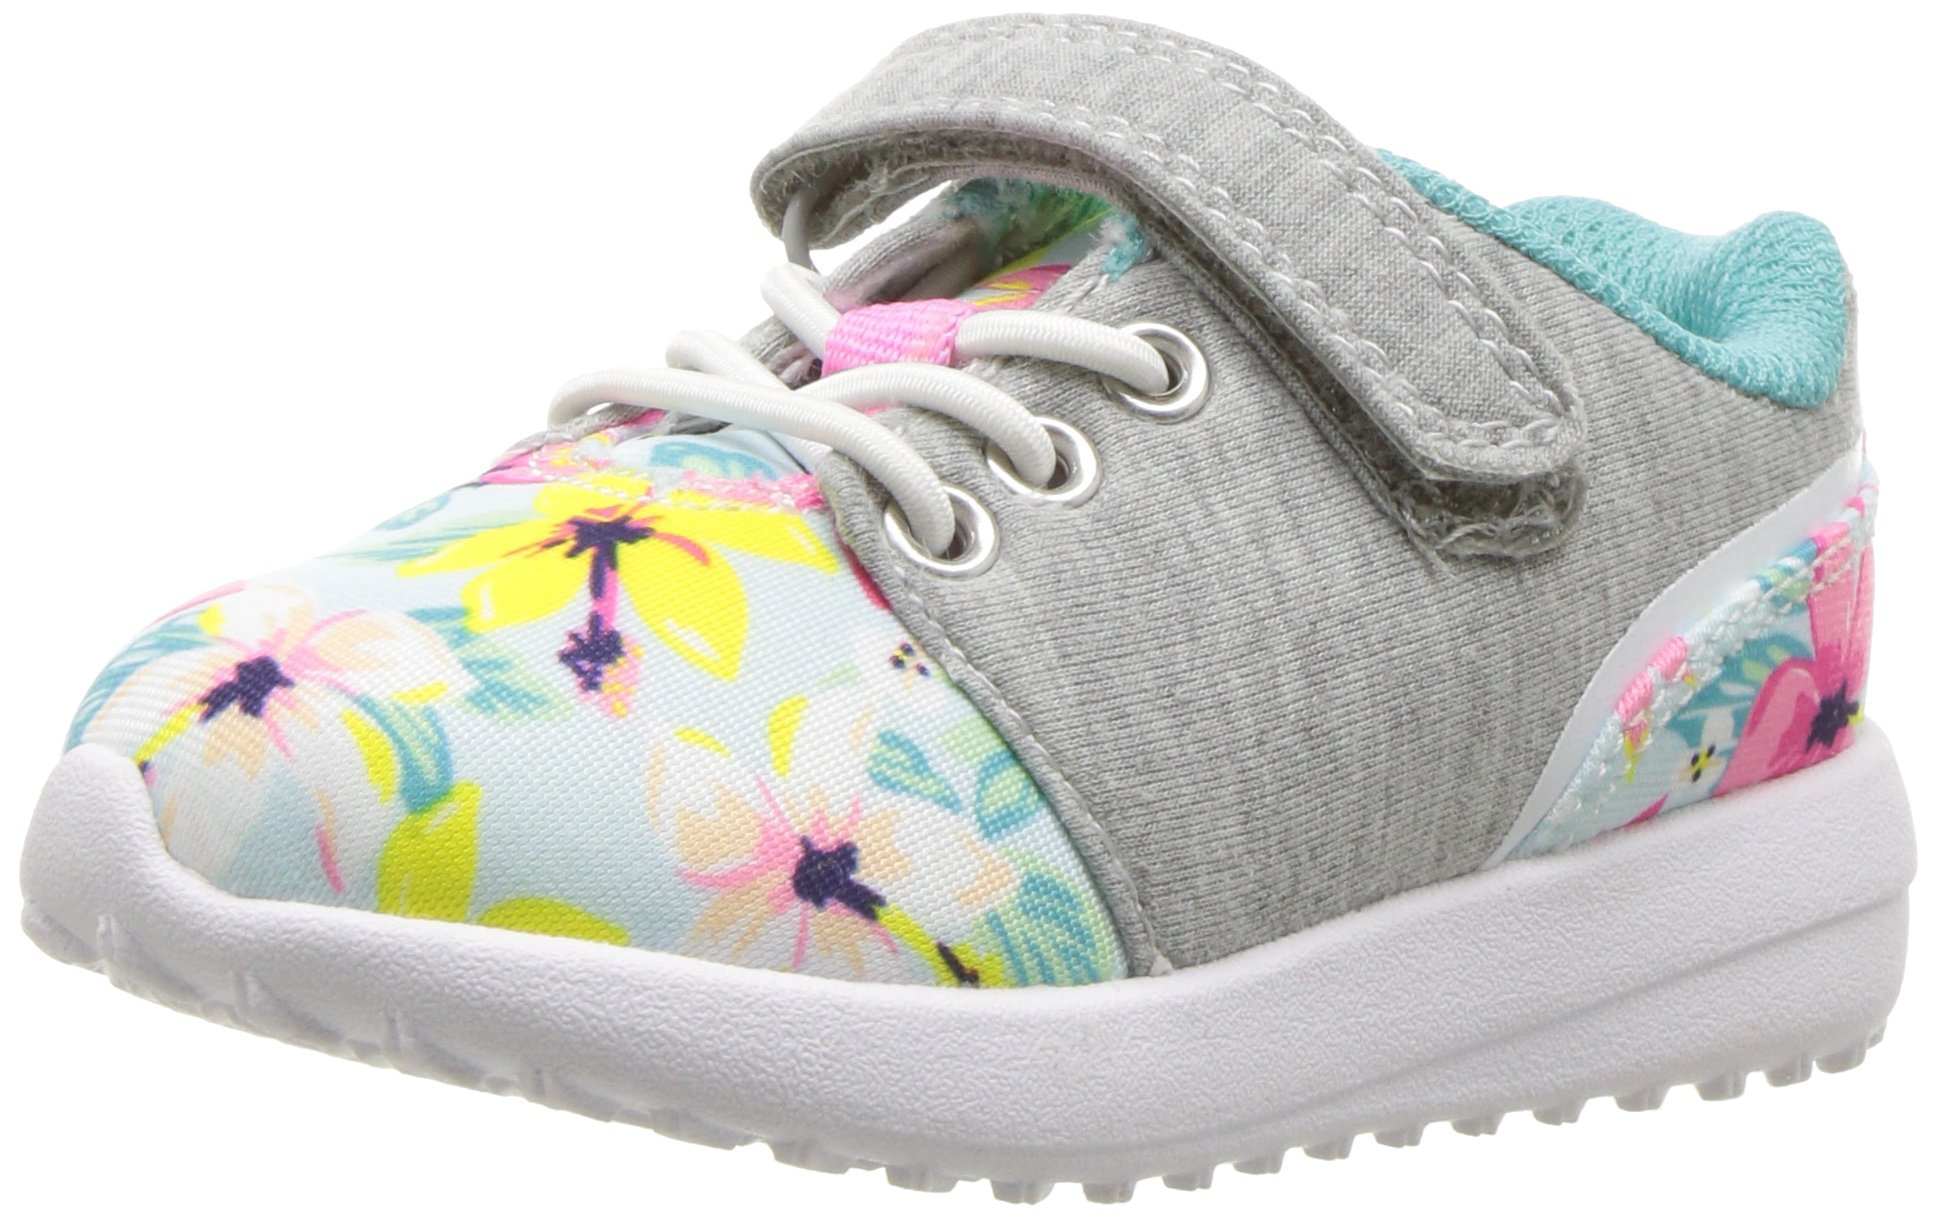 Carter's Odissey Girl's Lightweight Sneaker, Print, 11 M US Little Kid